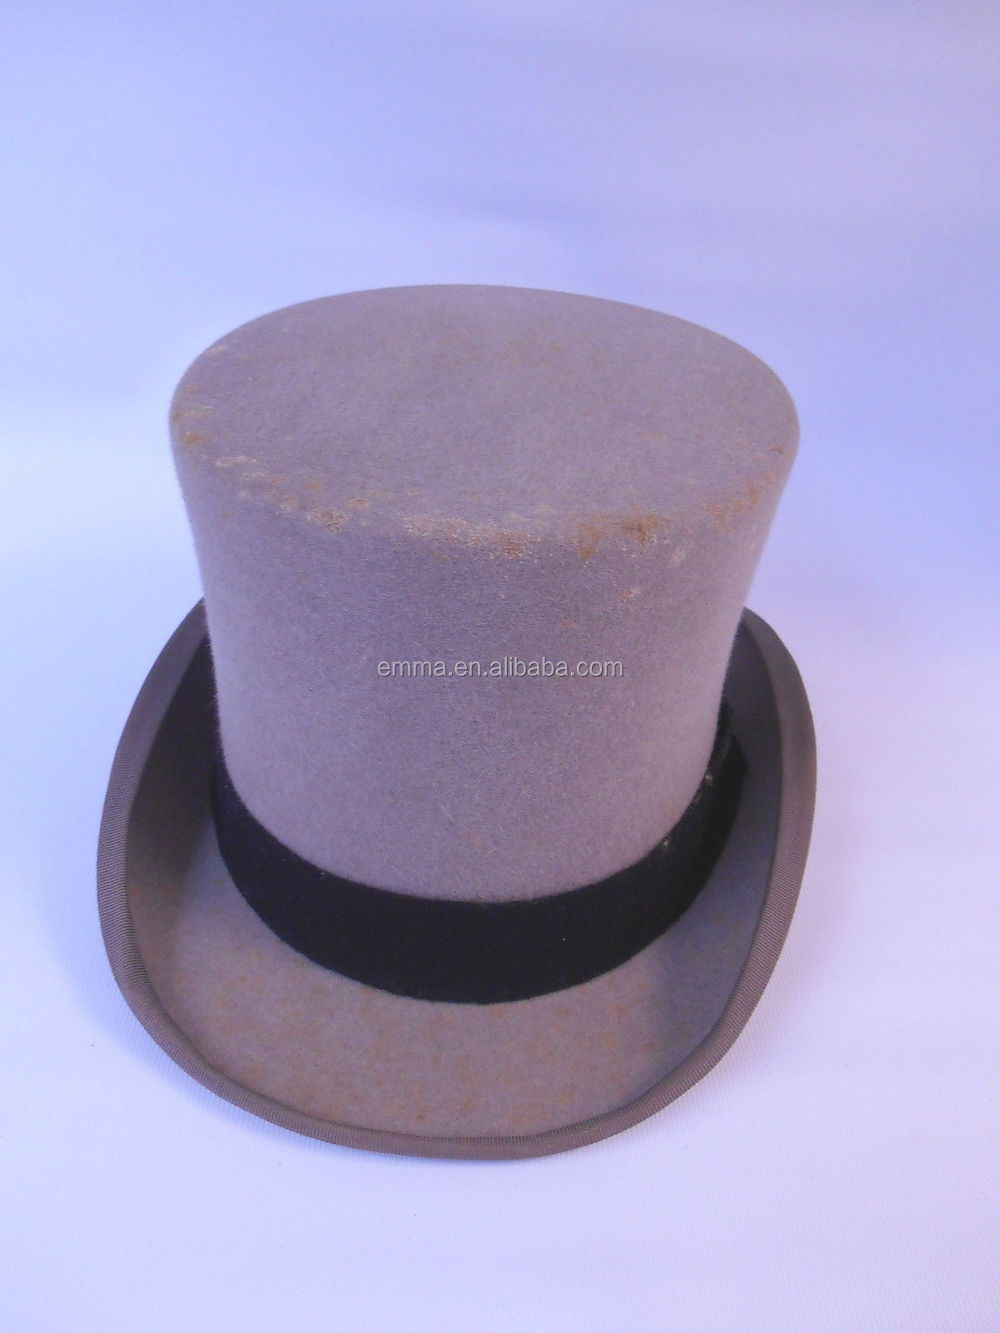 150e0962c2d Hot sale carnival party hat men s black round top hat with cheap price  HT2247